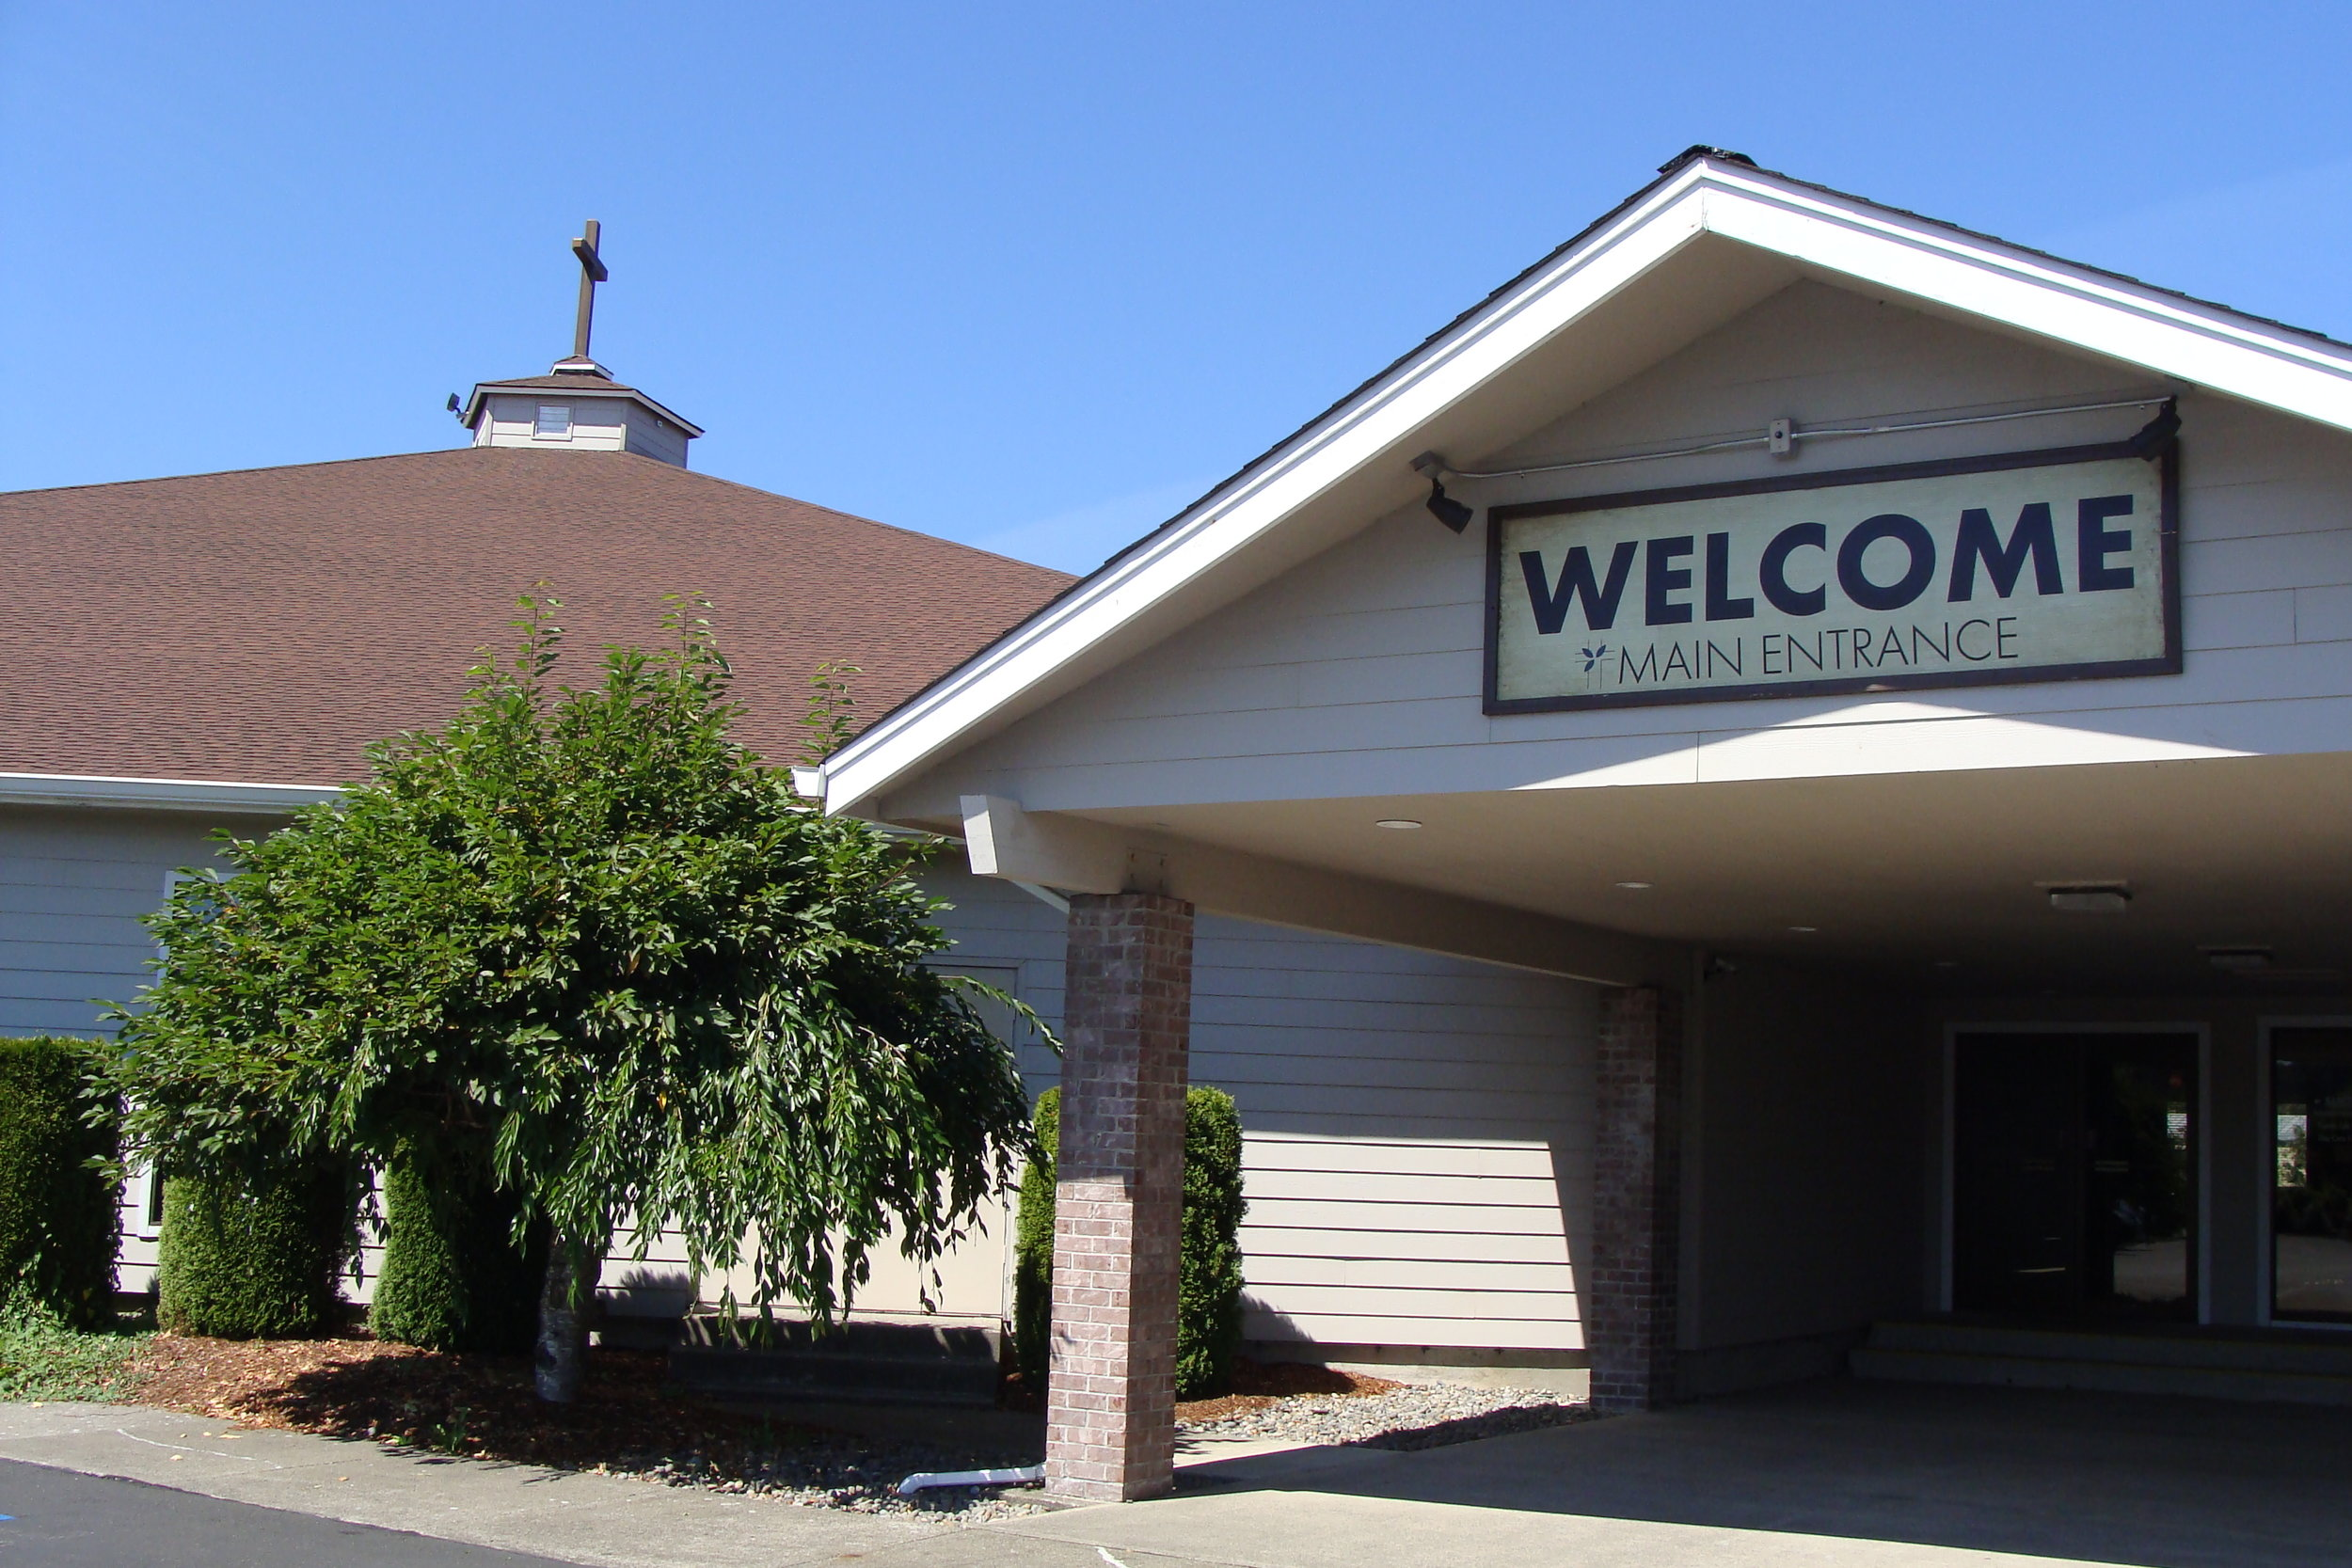 Approaching the building... - We have a small parking lot in the